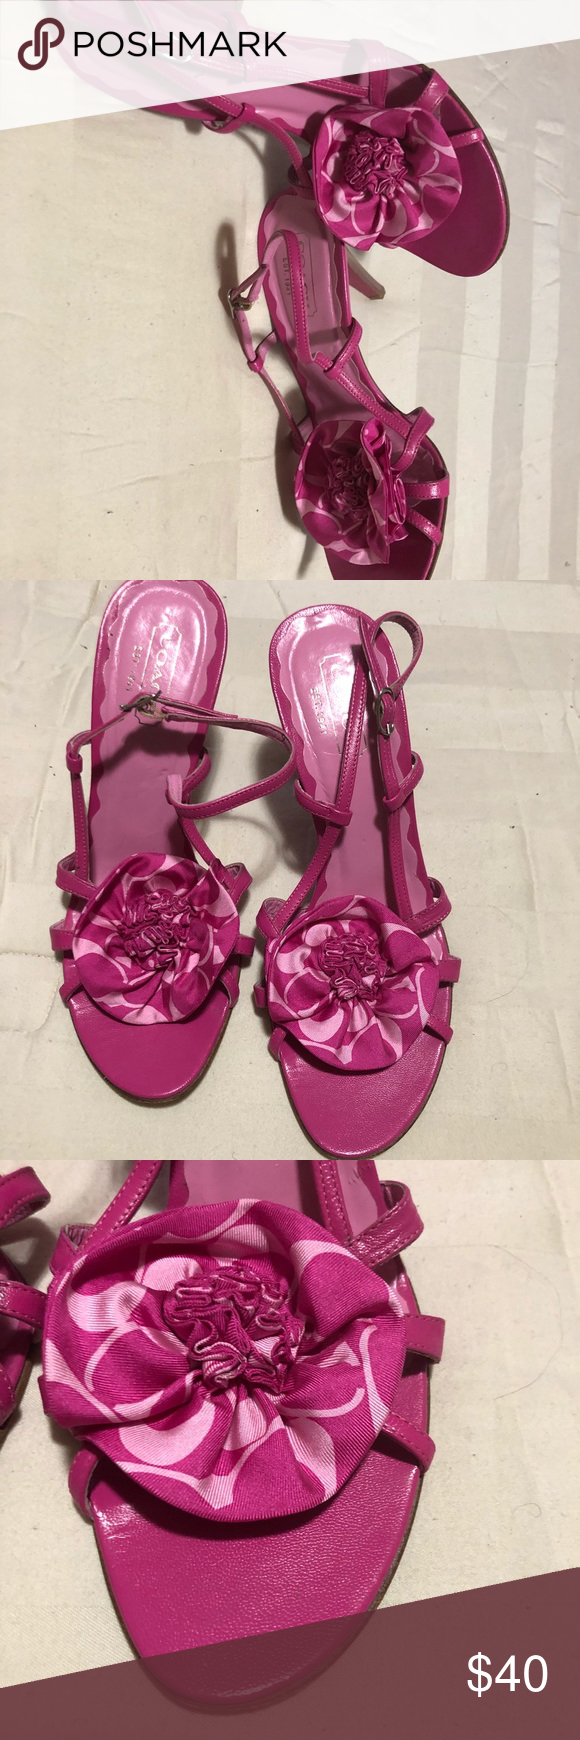 "dbc974122c330c Coach Sandals This is a gorgeous pair of Coach sandals in a Fuchsia color.  They are in excellent used condition. They are leather with a Coach  signature ""C"" ..."